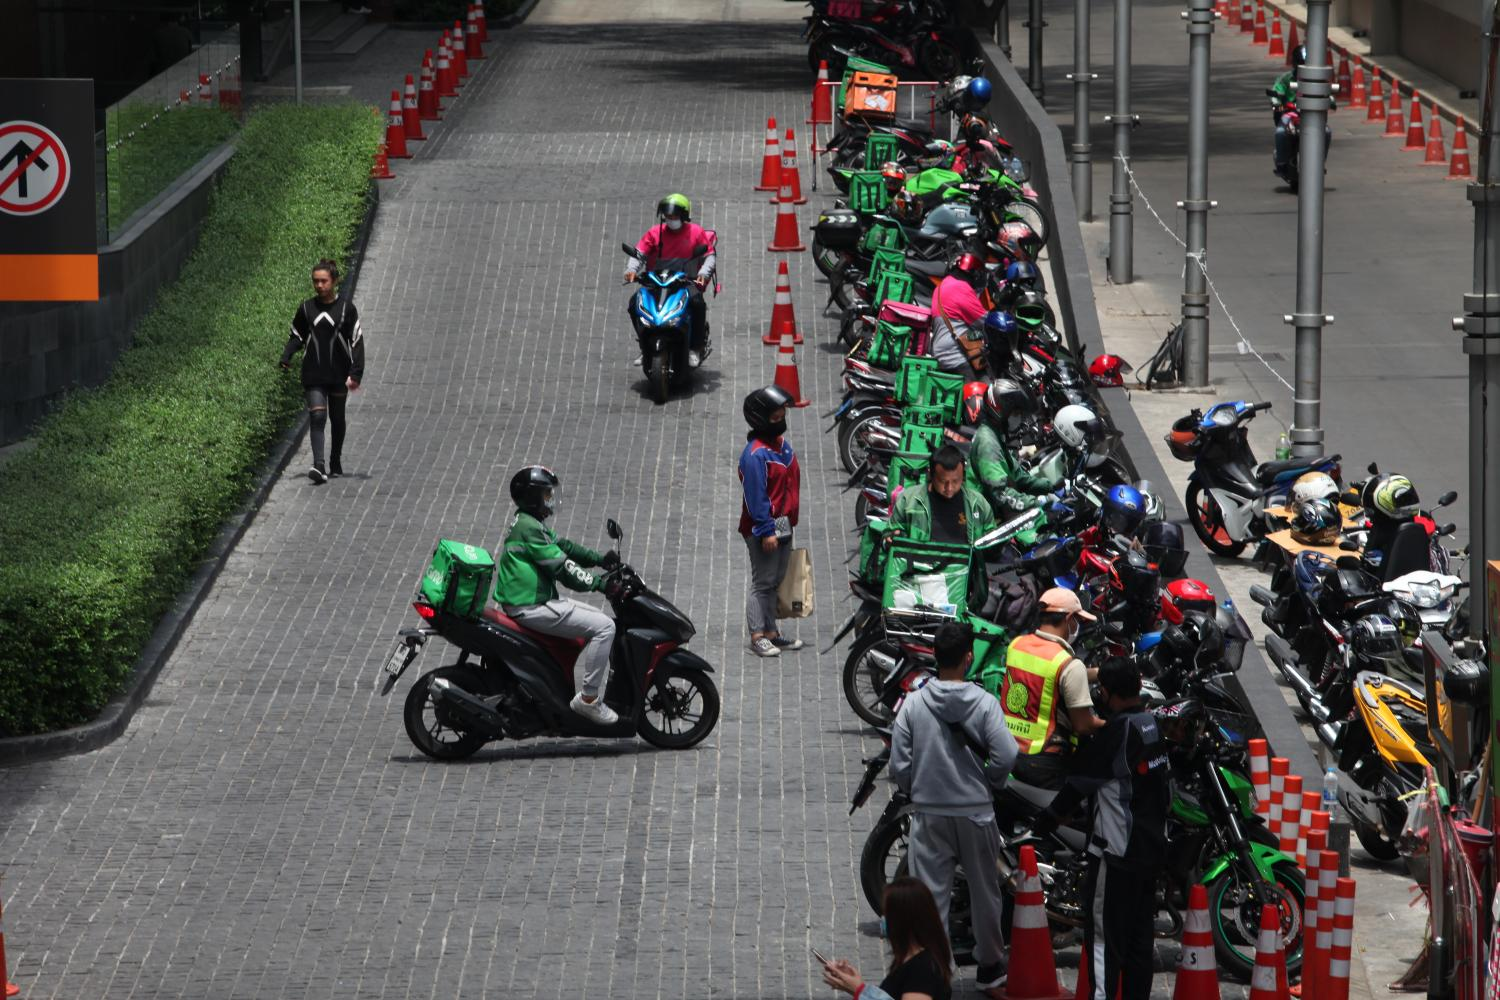 Food delivery bikes of GrabFood, Line Man and Foodpanda line up in front of a mall in the Ratchaprasong-Siam area. (Photo by Apichart Jinakul)